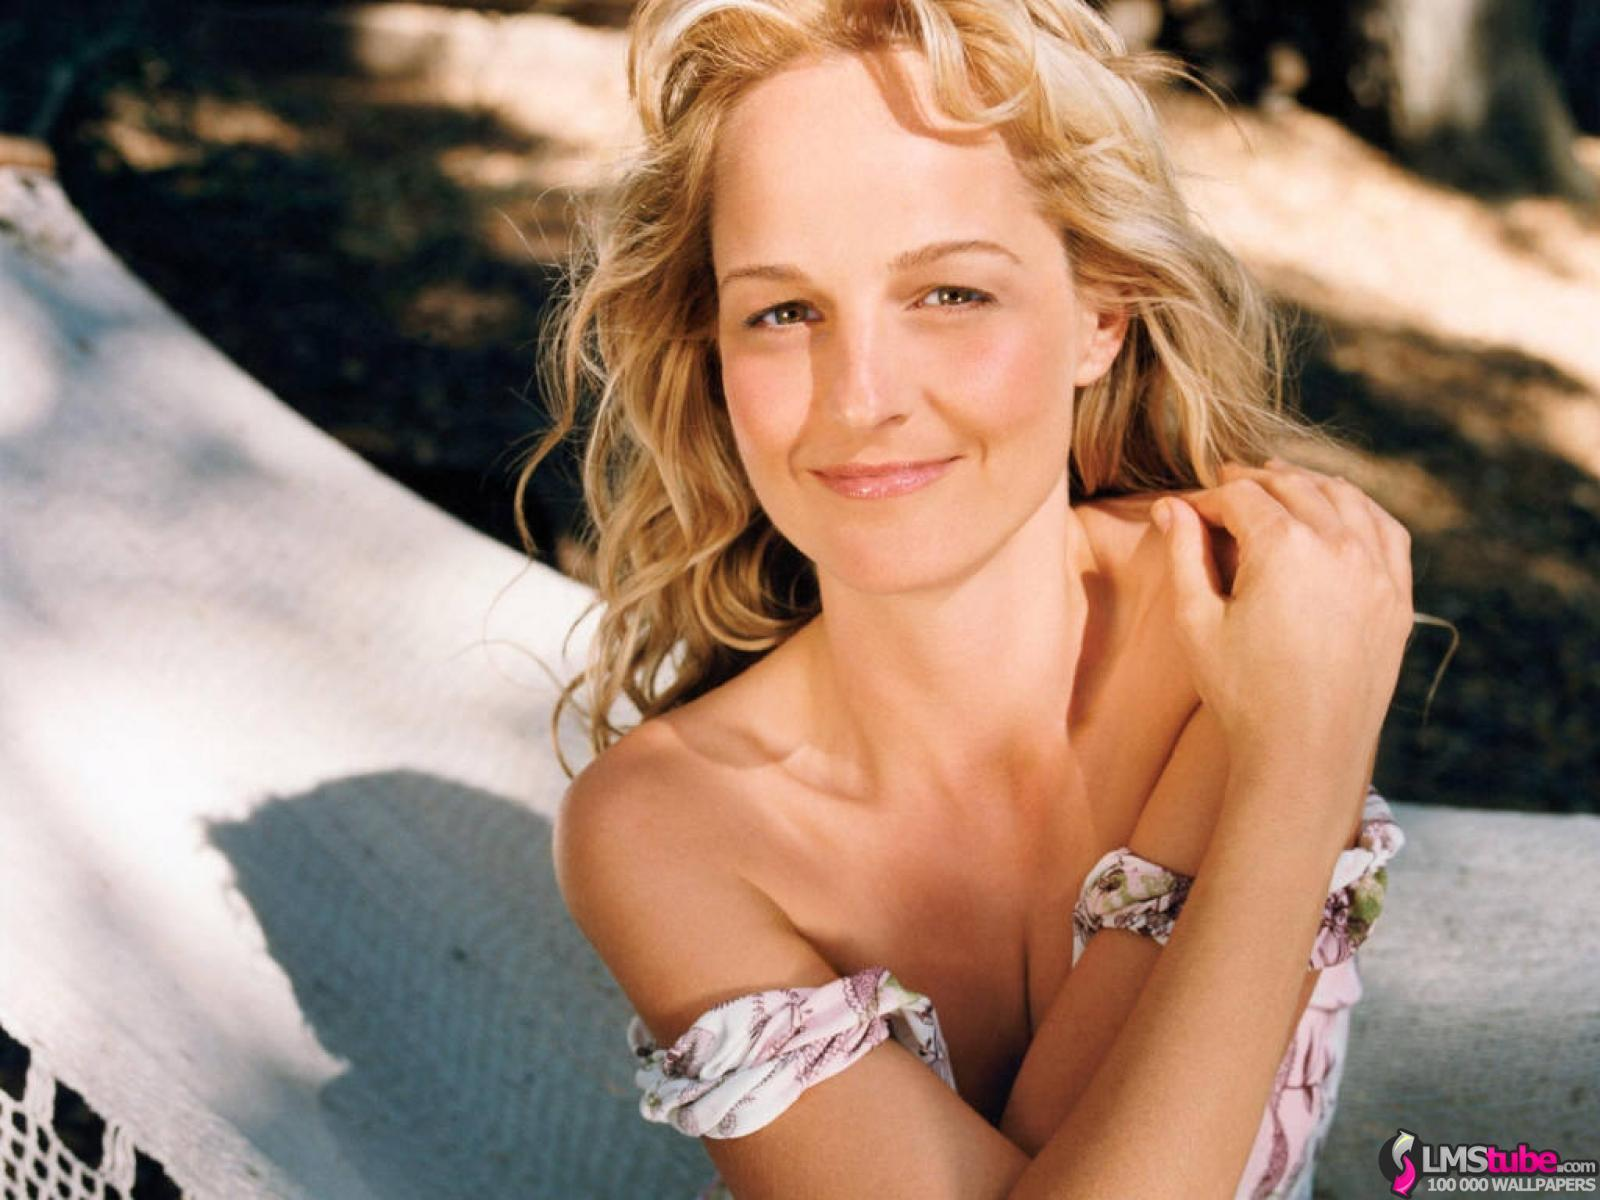 Helen Hunt free wallpapers 1600x1200 n°6